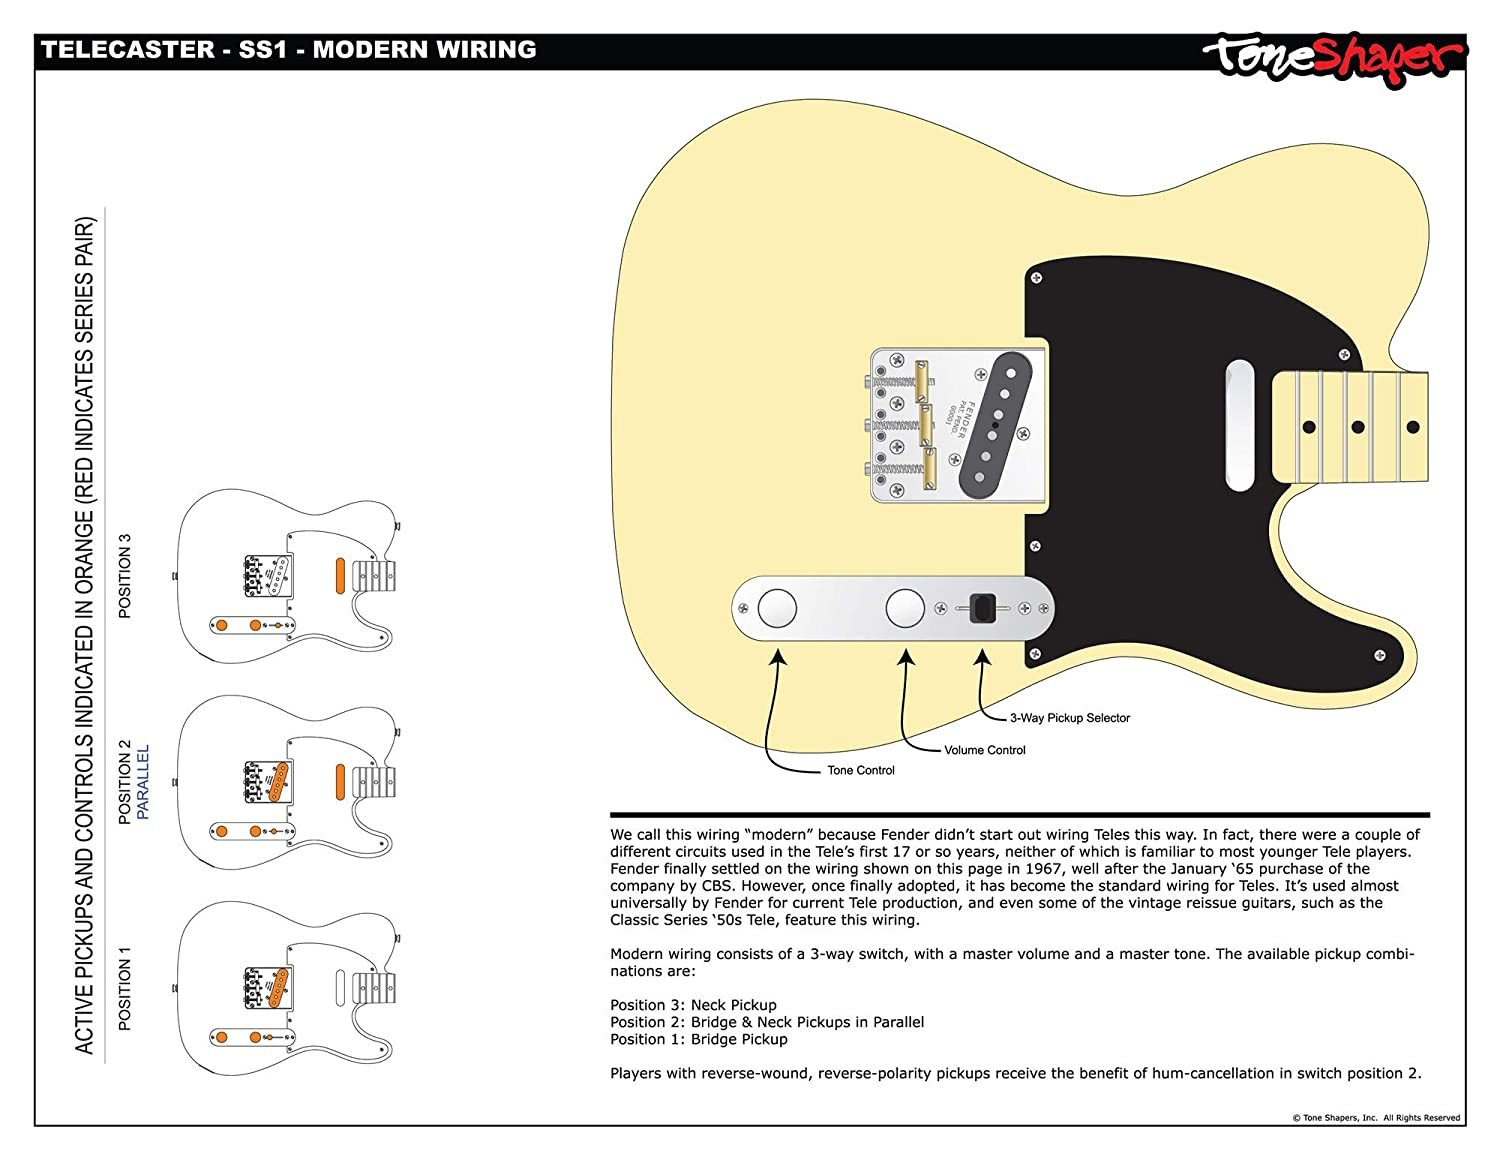 Fender Noiseless Pickups Telecaster Way Wiring Diagram on fender cyclone ii wiring diagram, vintage diagram, fender scn pickup wiring diagram, active pickups wiring diagram, fender pot wiring, fender stratocaster parts diagram, fender s1 switch wiring diagram, fender guitar wiring diagrams, fender jaguar bass wiring diagram,